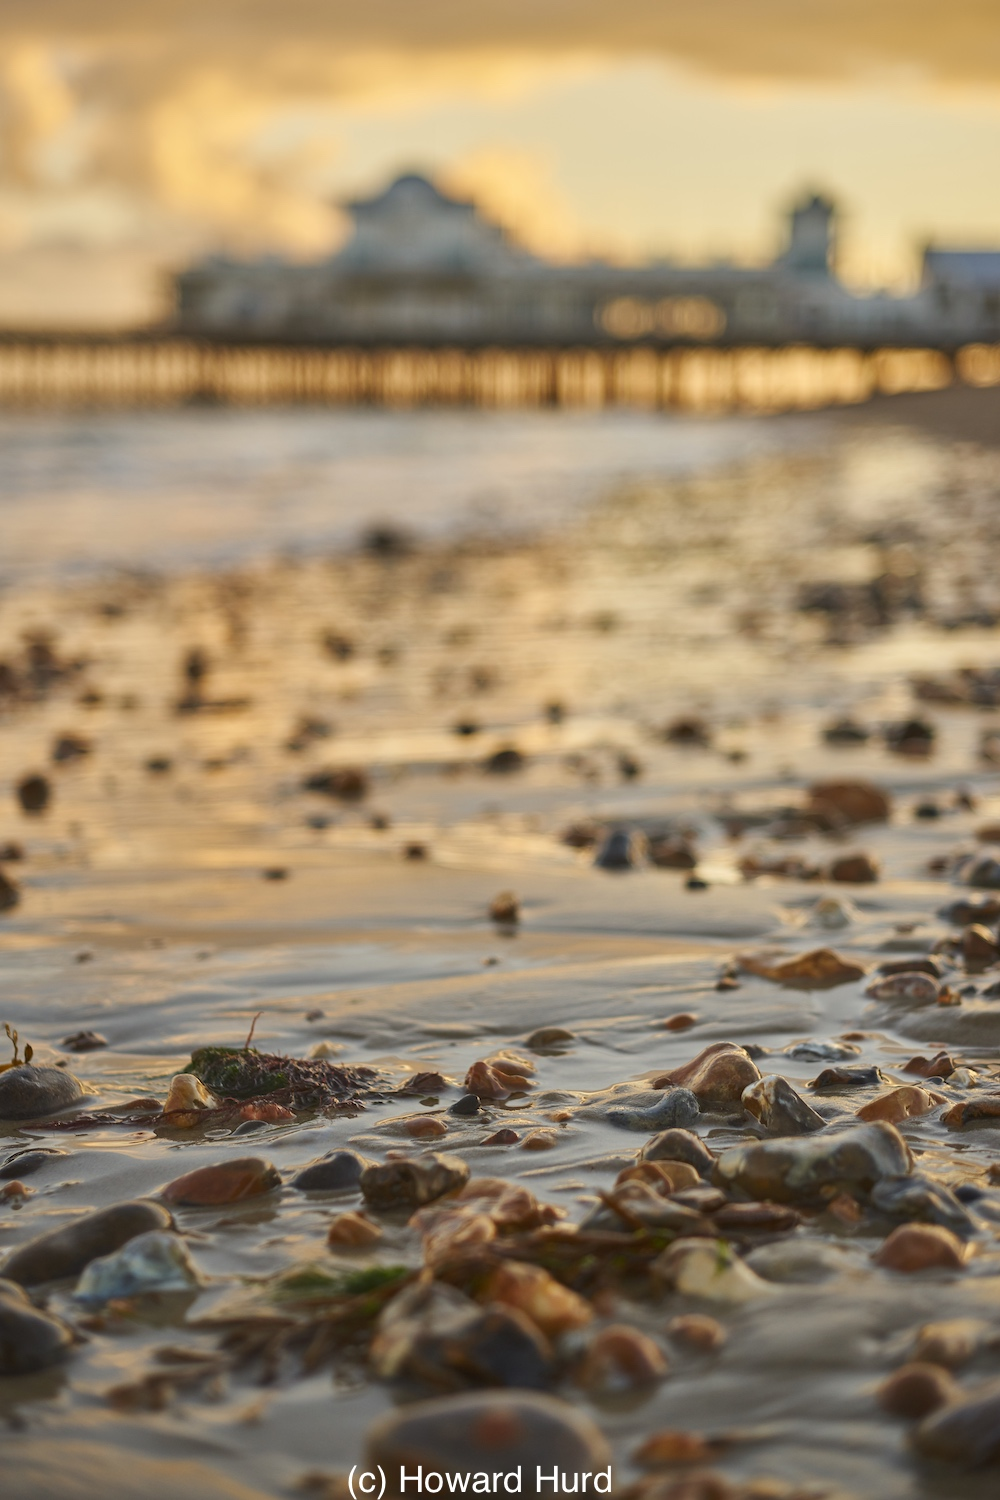 South Parade Pier, Southsea - taken with Industar N-61 lens on Sony a7